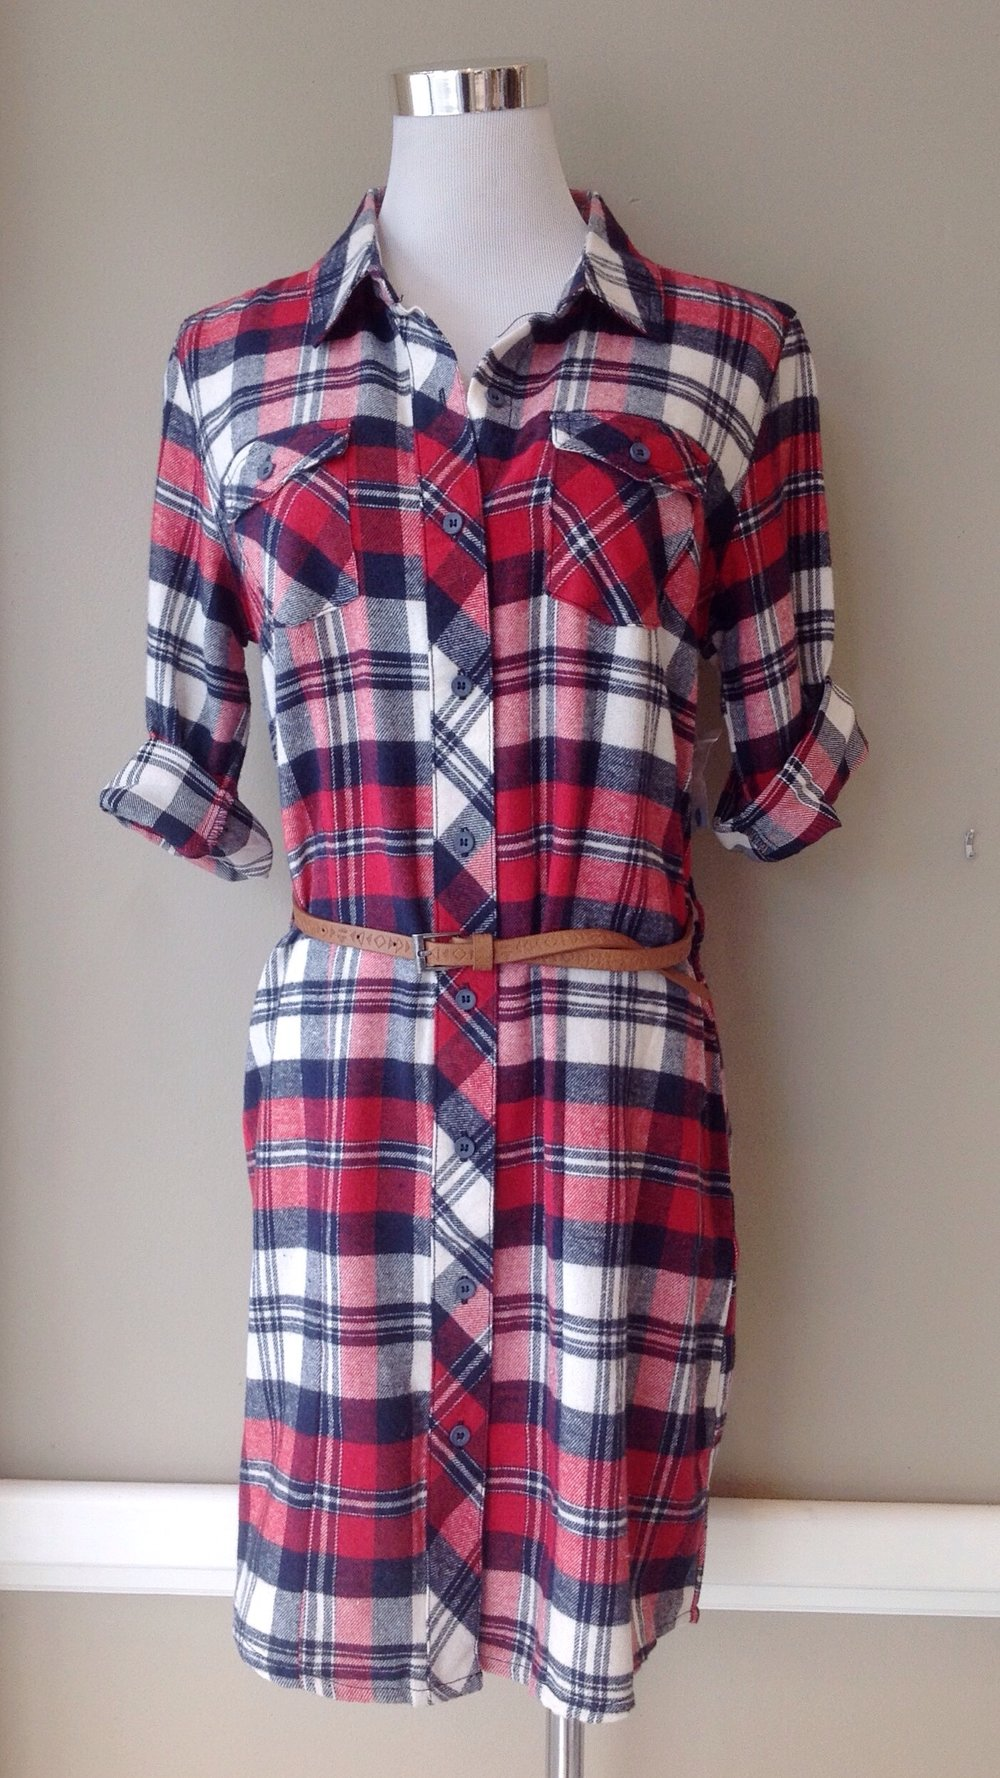 Lightweight flannel shirt dress with skinny belt, $38